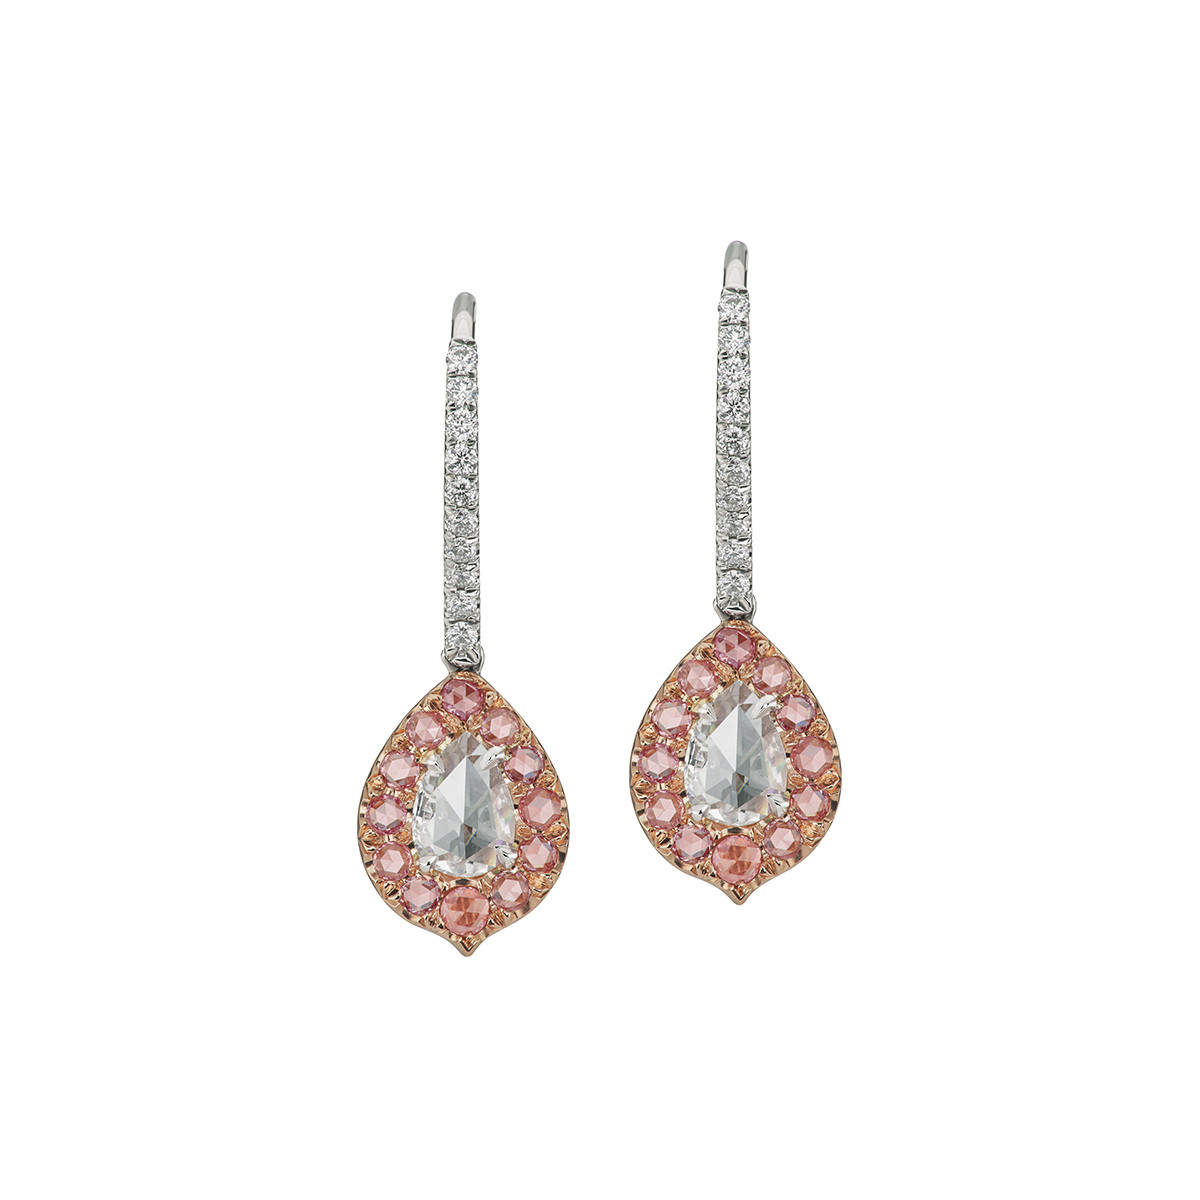 Rose-Cut White & Pink Diamond Drop Earrings